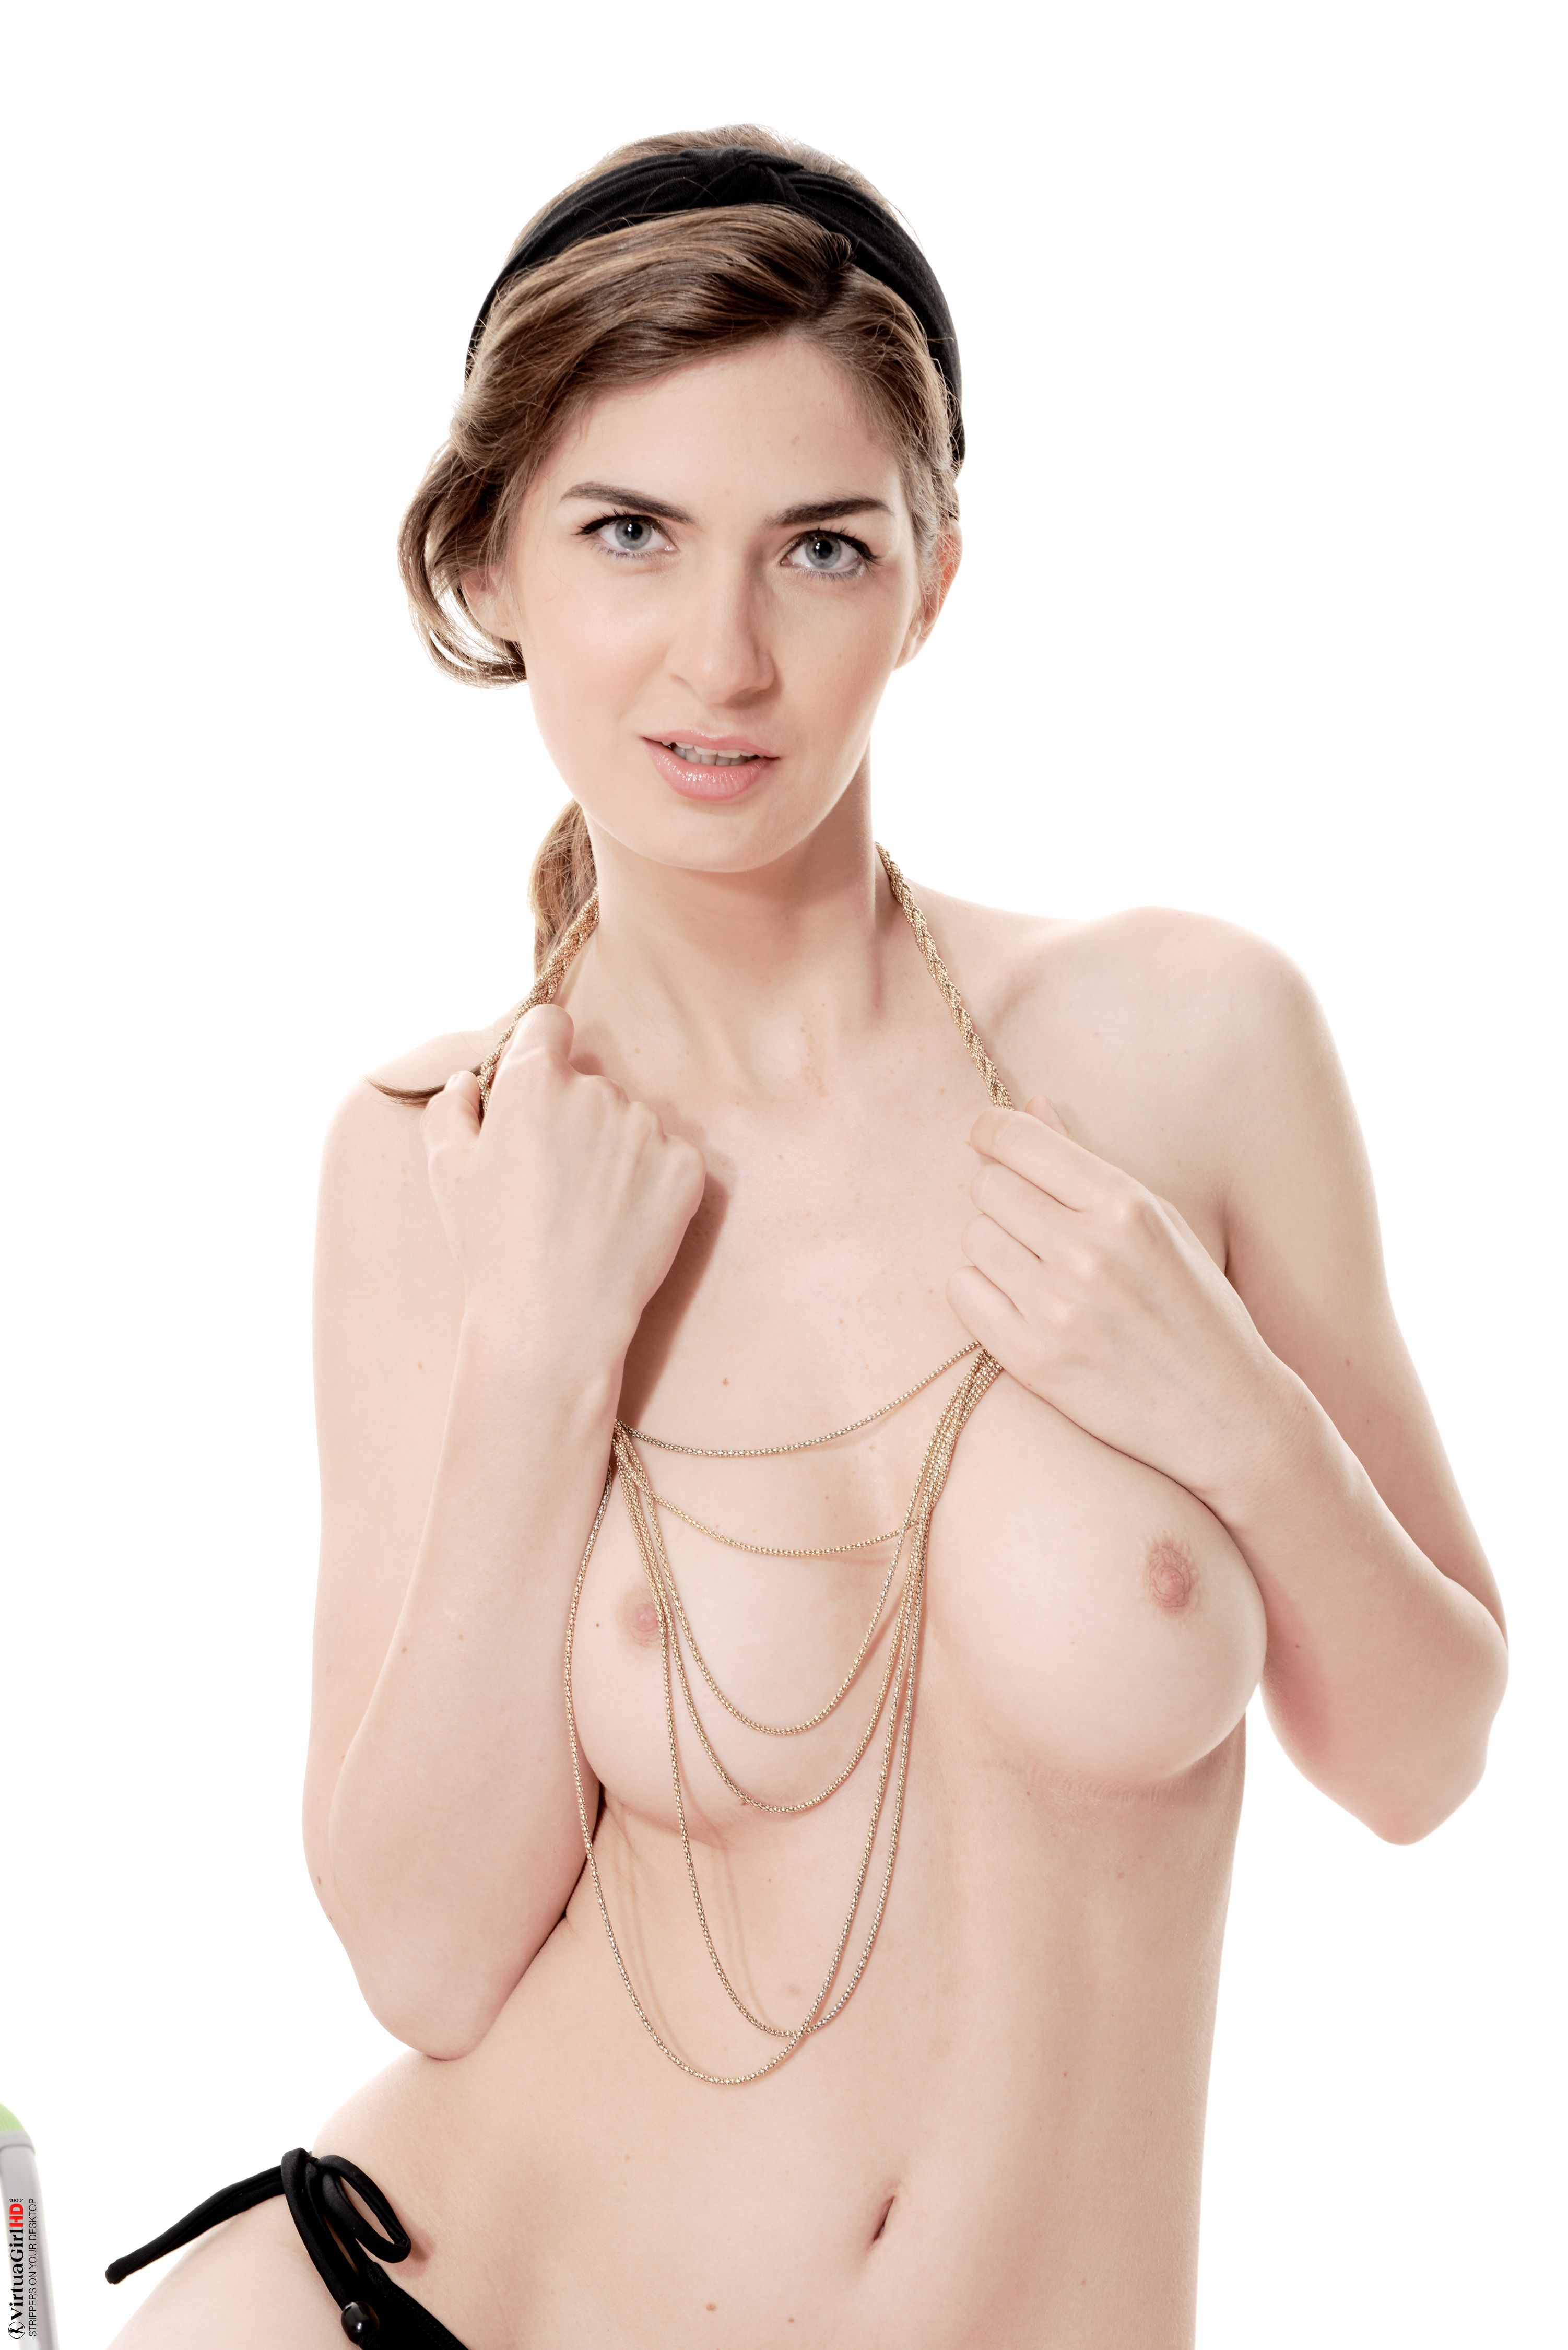 naked female wallpapers